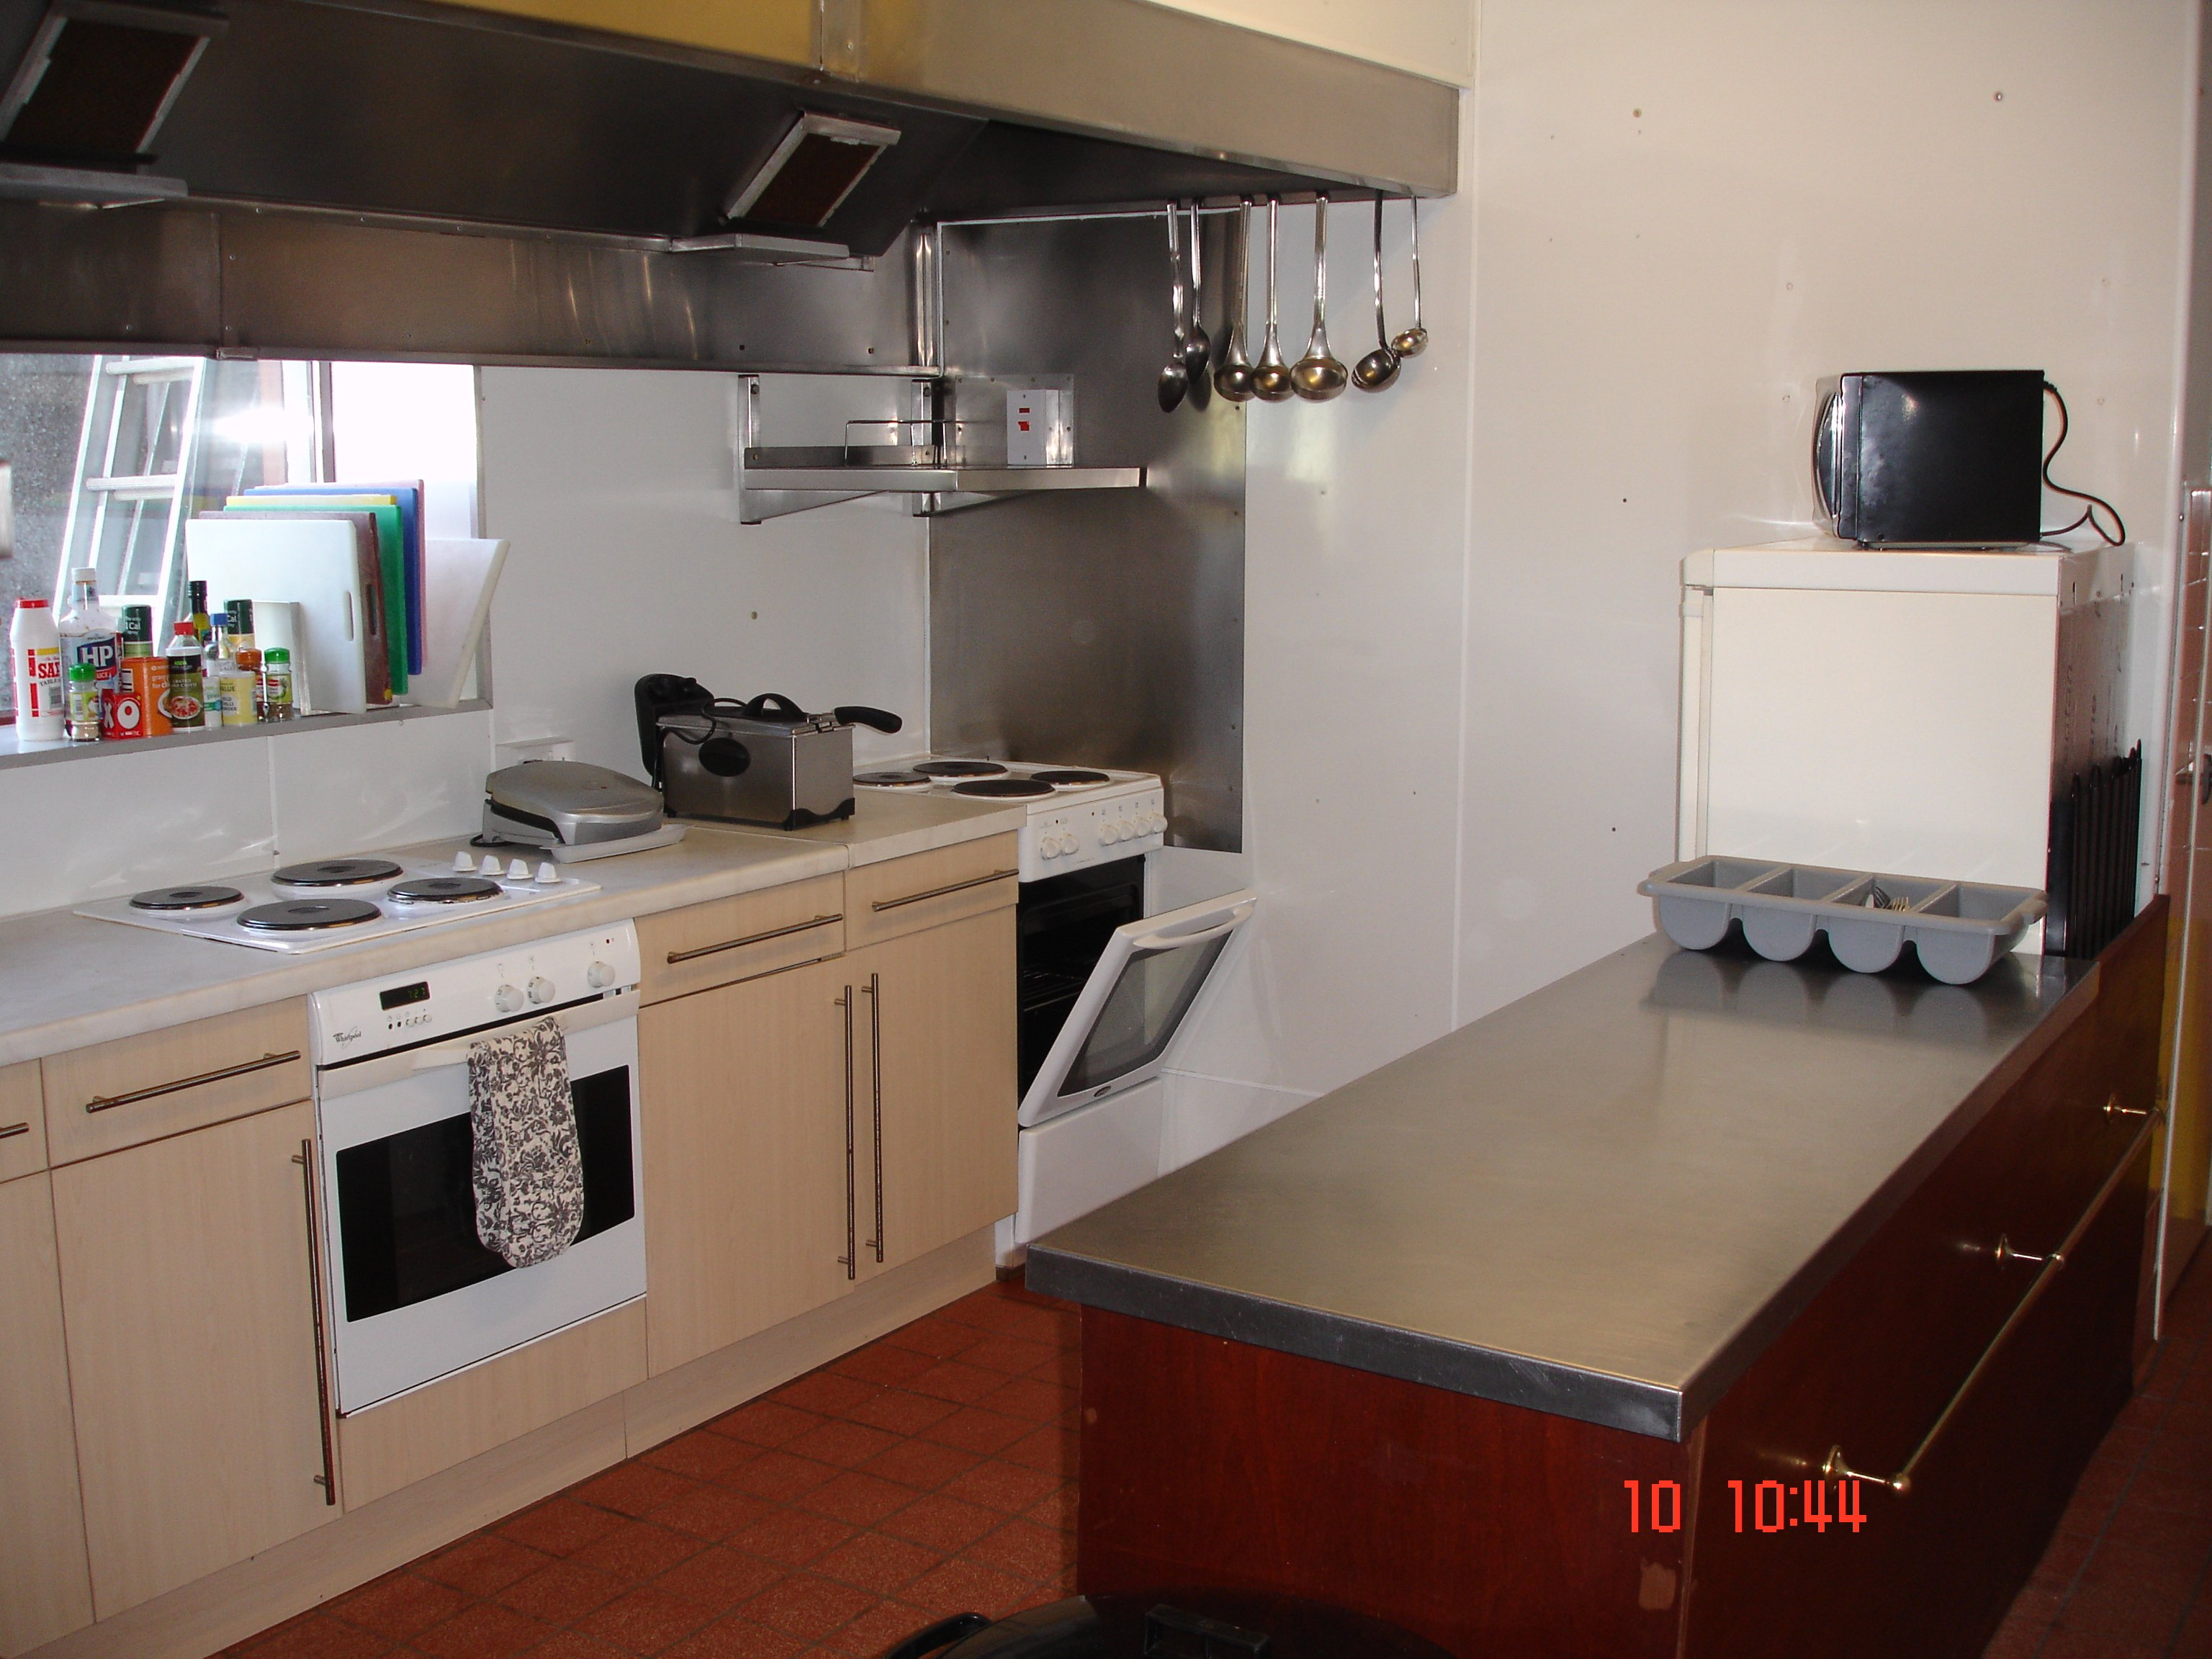 kitchen with all ustensils and white walls